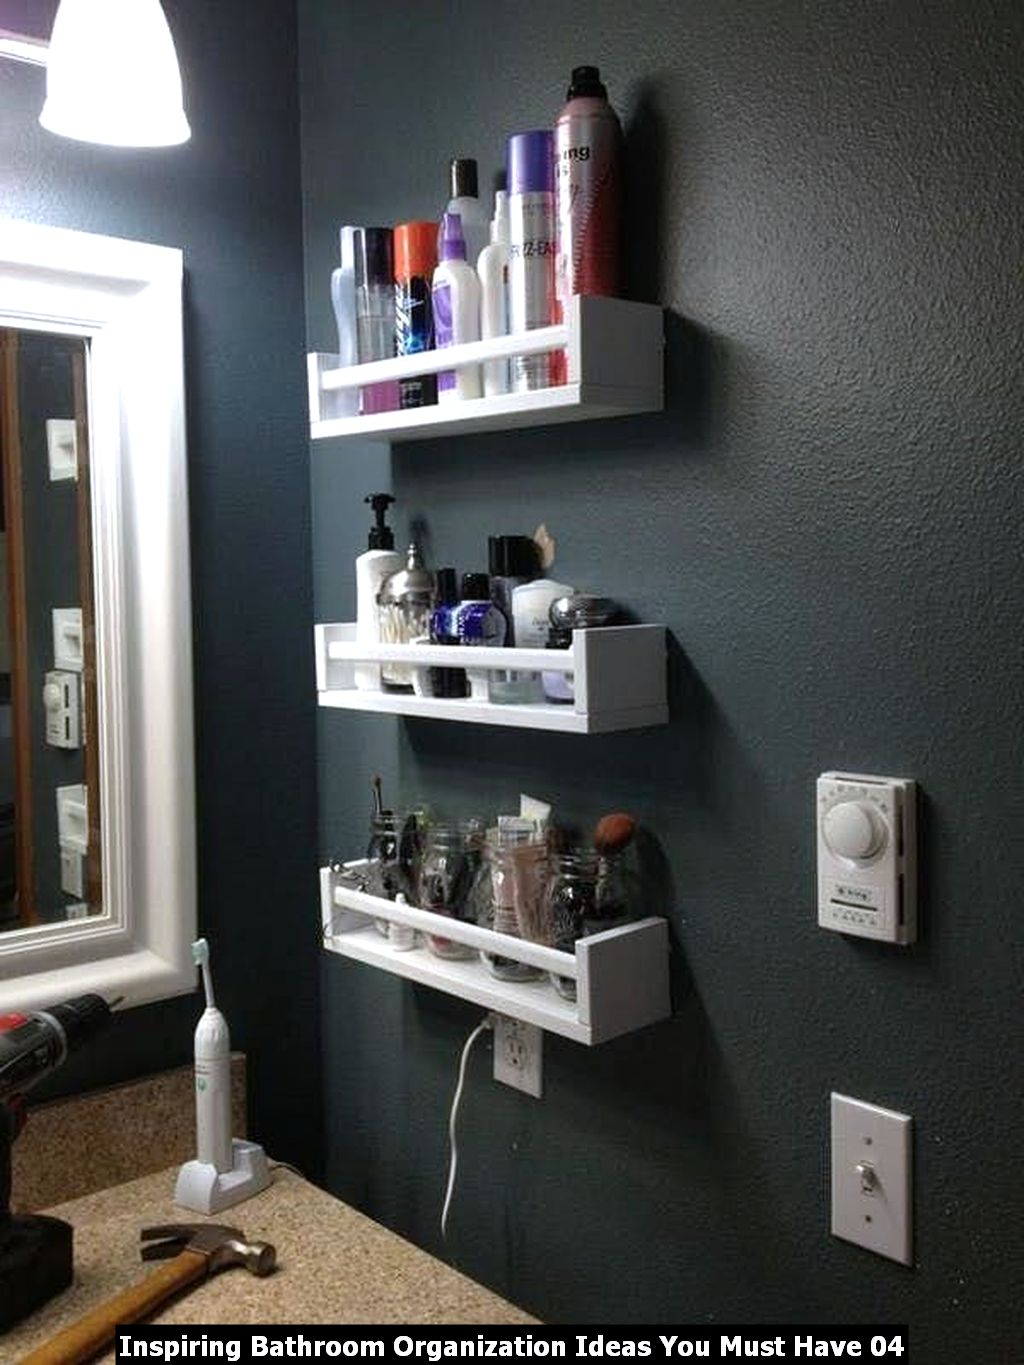 Inspiring Bathroom Organization Ideas You Must Have 04